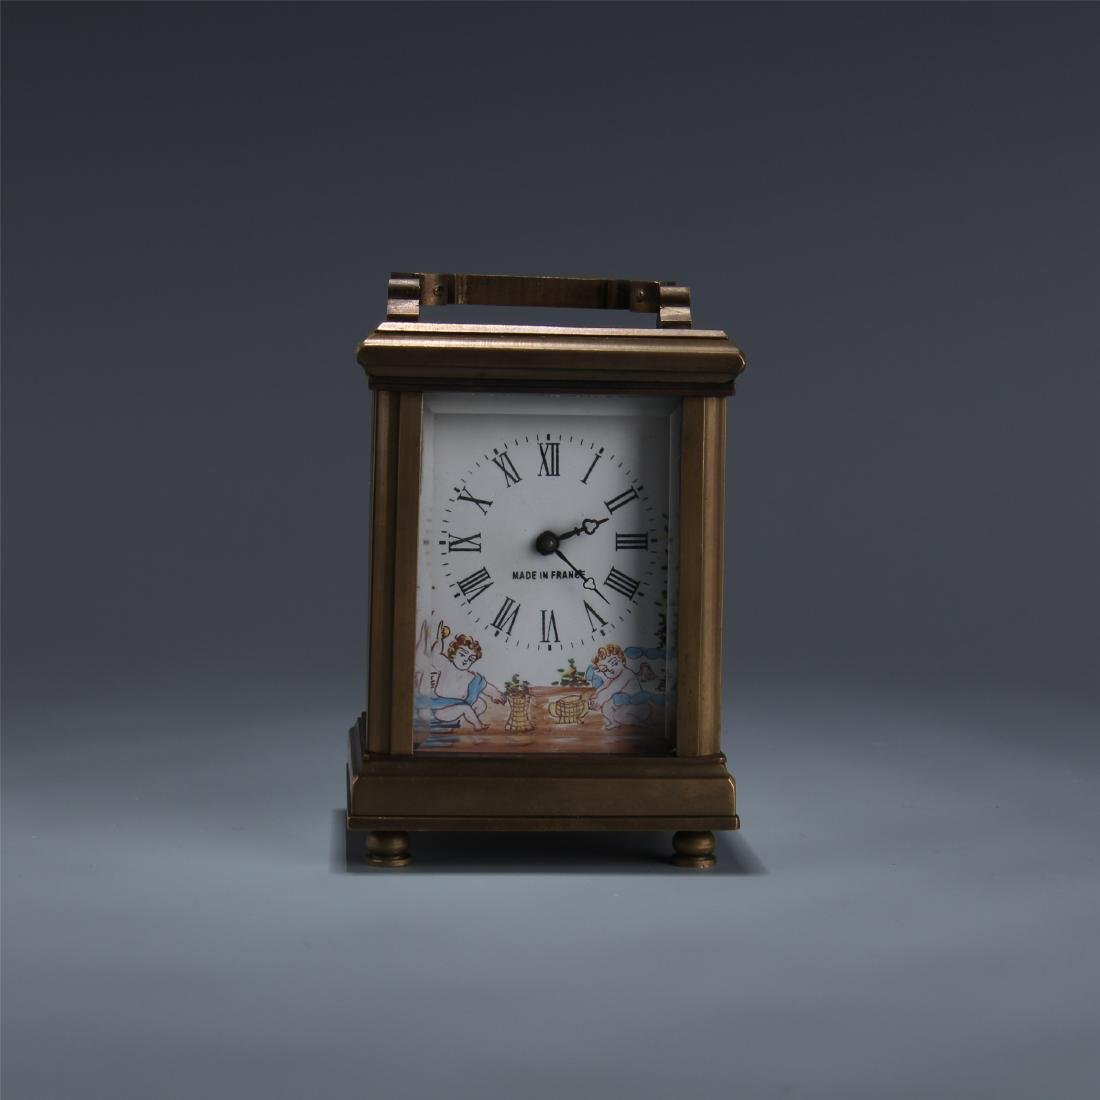 EUROPEAN BRONZE ENAMEL DIAL CLOCK